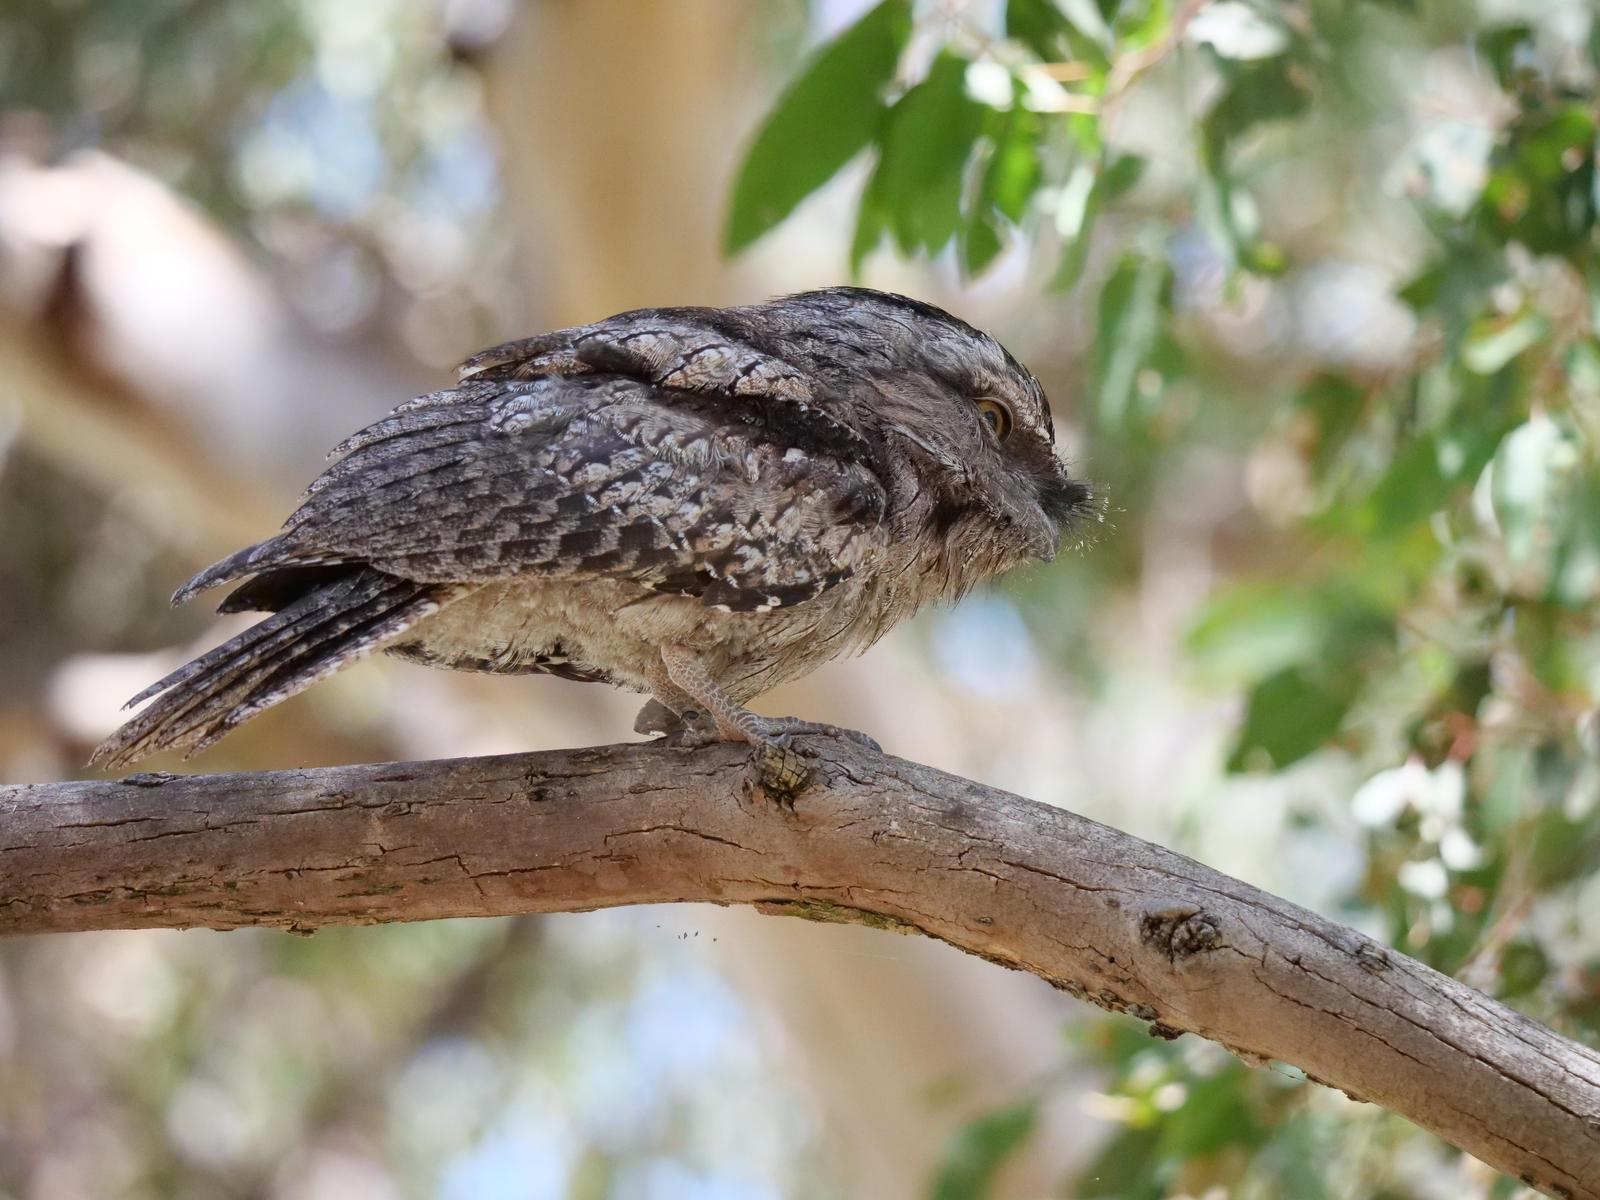 Tawny Frogmouth Photo by Peter Lowe